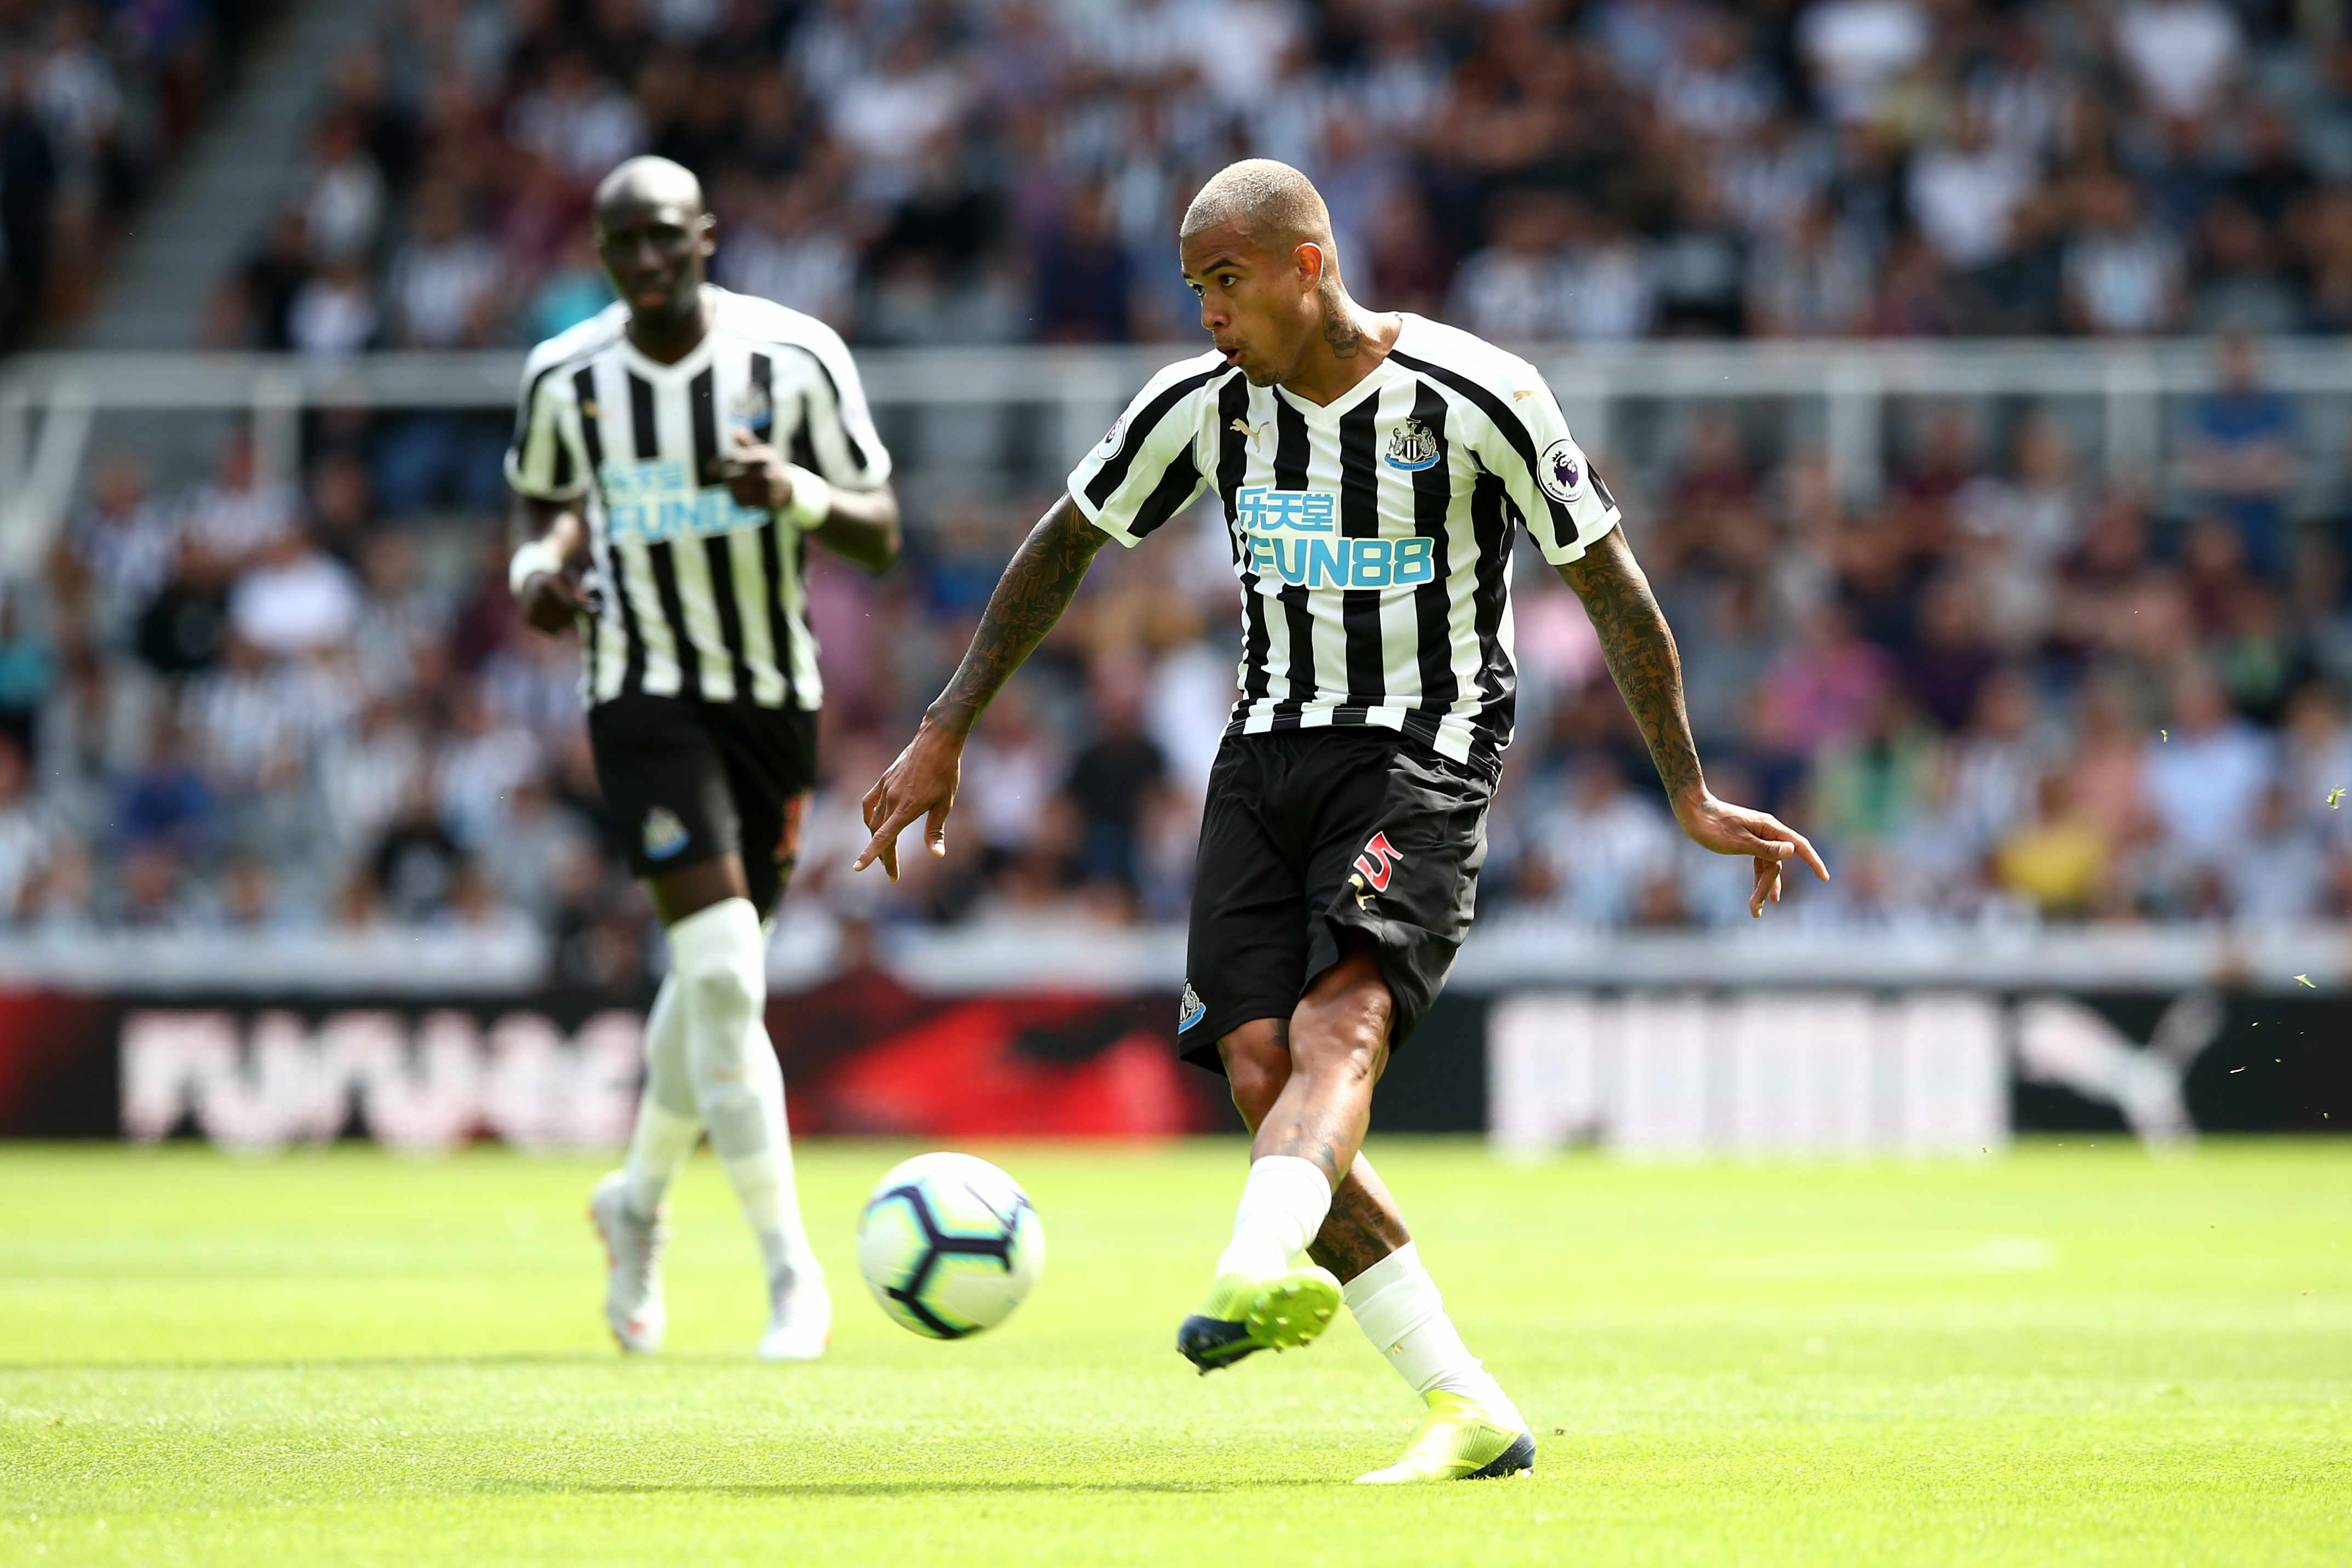 NEWCASTLE UPON TYNE, ENGLAND - AUGUST 11: Kenedy of Newcastle United during the Premier League match between Newcastle United and Tottenham Hotspur at St. James Park on August 11, 2018 in Newcastle upon Tyne, United Kingdom. (Photo by Jan Kruger/Getty Images) TL